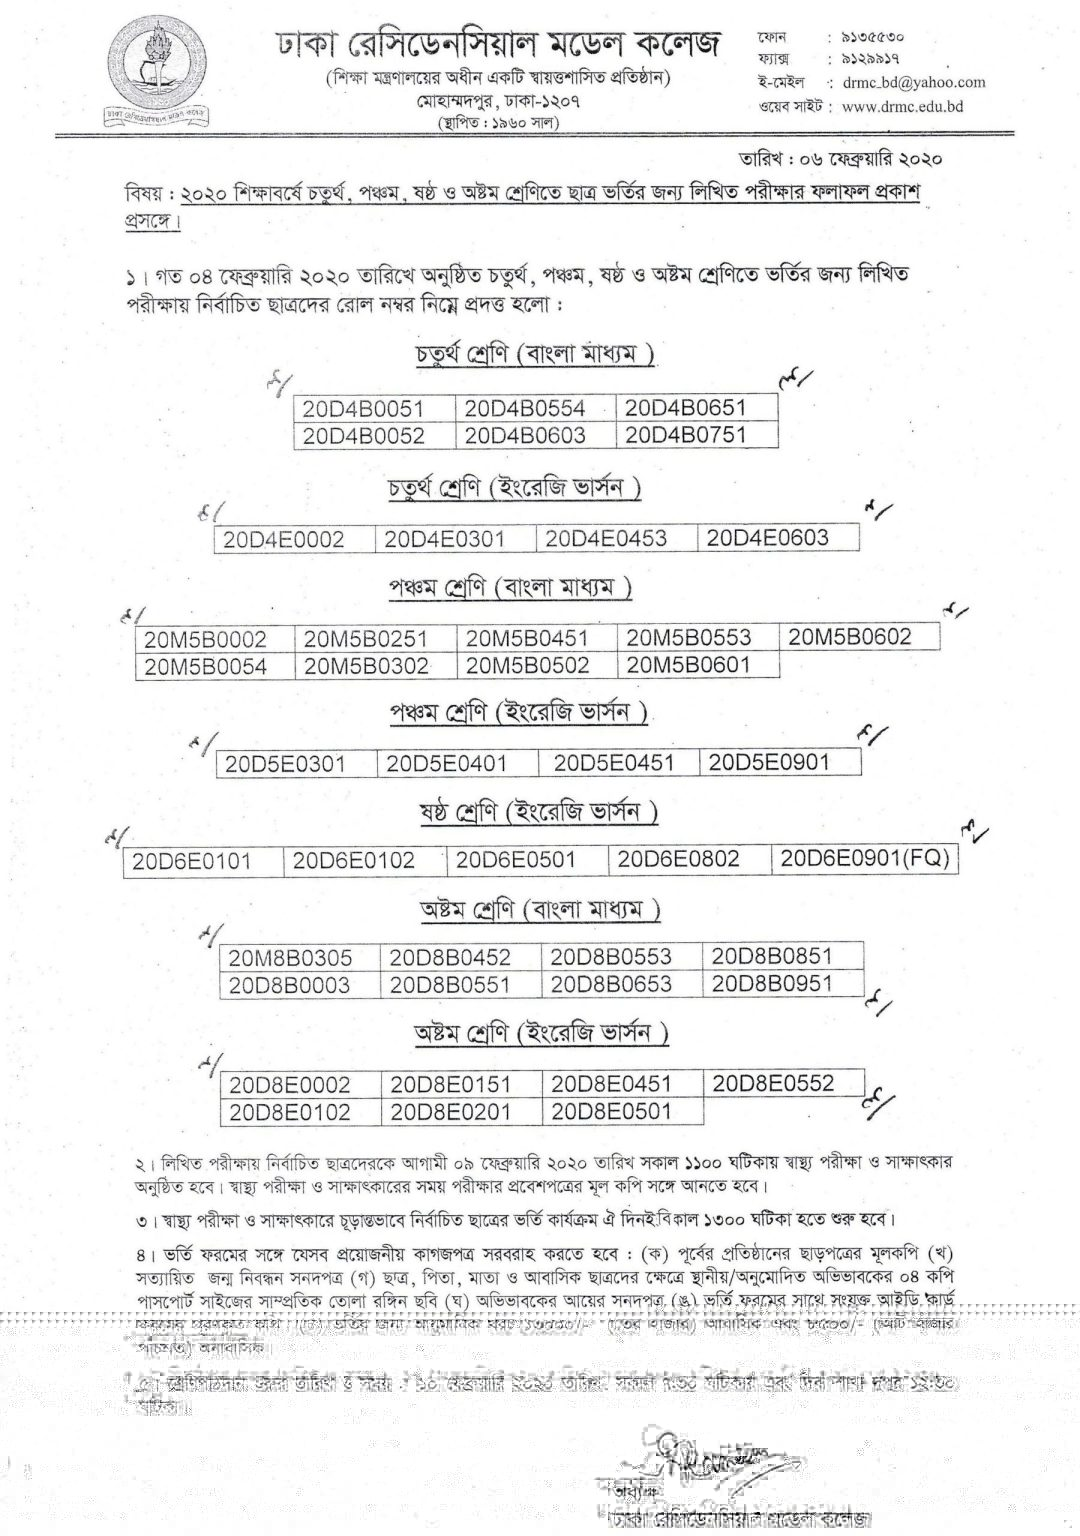 Dhaka Residential Model College Admission Notice Result 2019